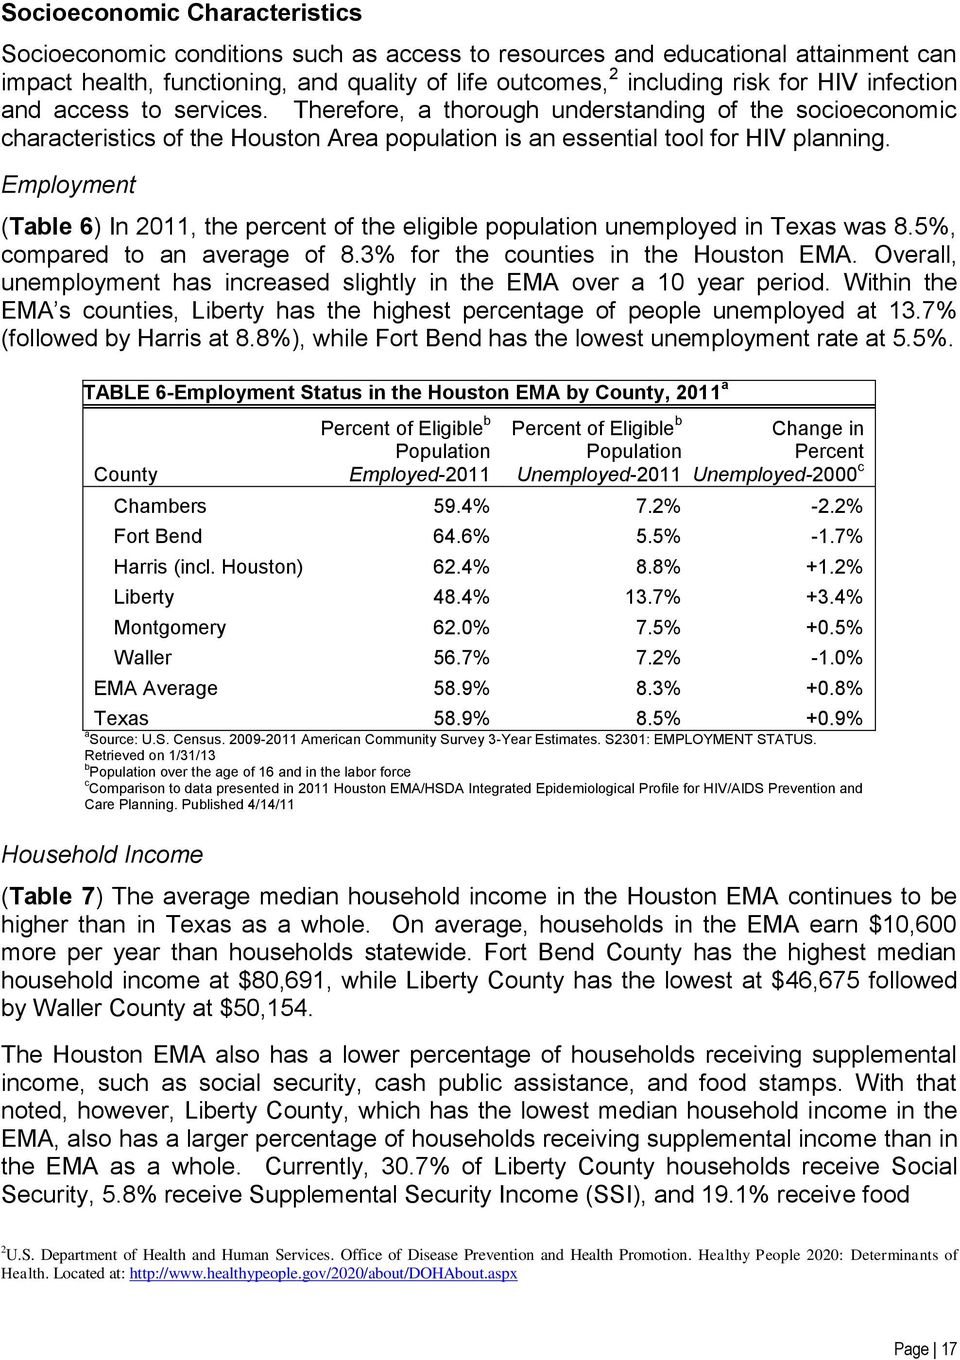 Employment (Table 6) In 2011, the percent of the eligible population unemployed in Texas was 8.5%, compared to an average of 8.3% for the counties in the Houston EMA.